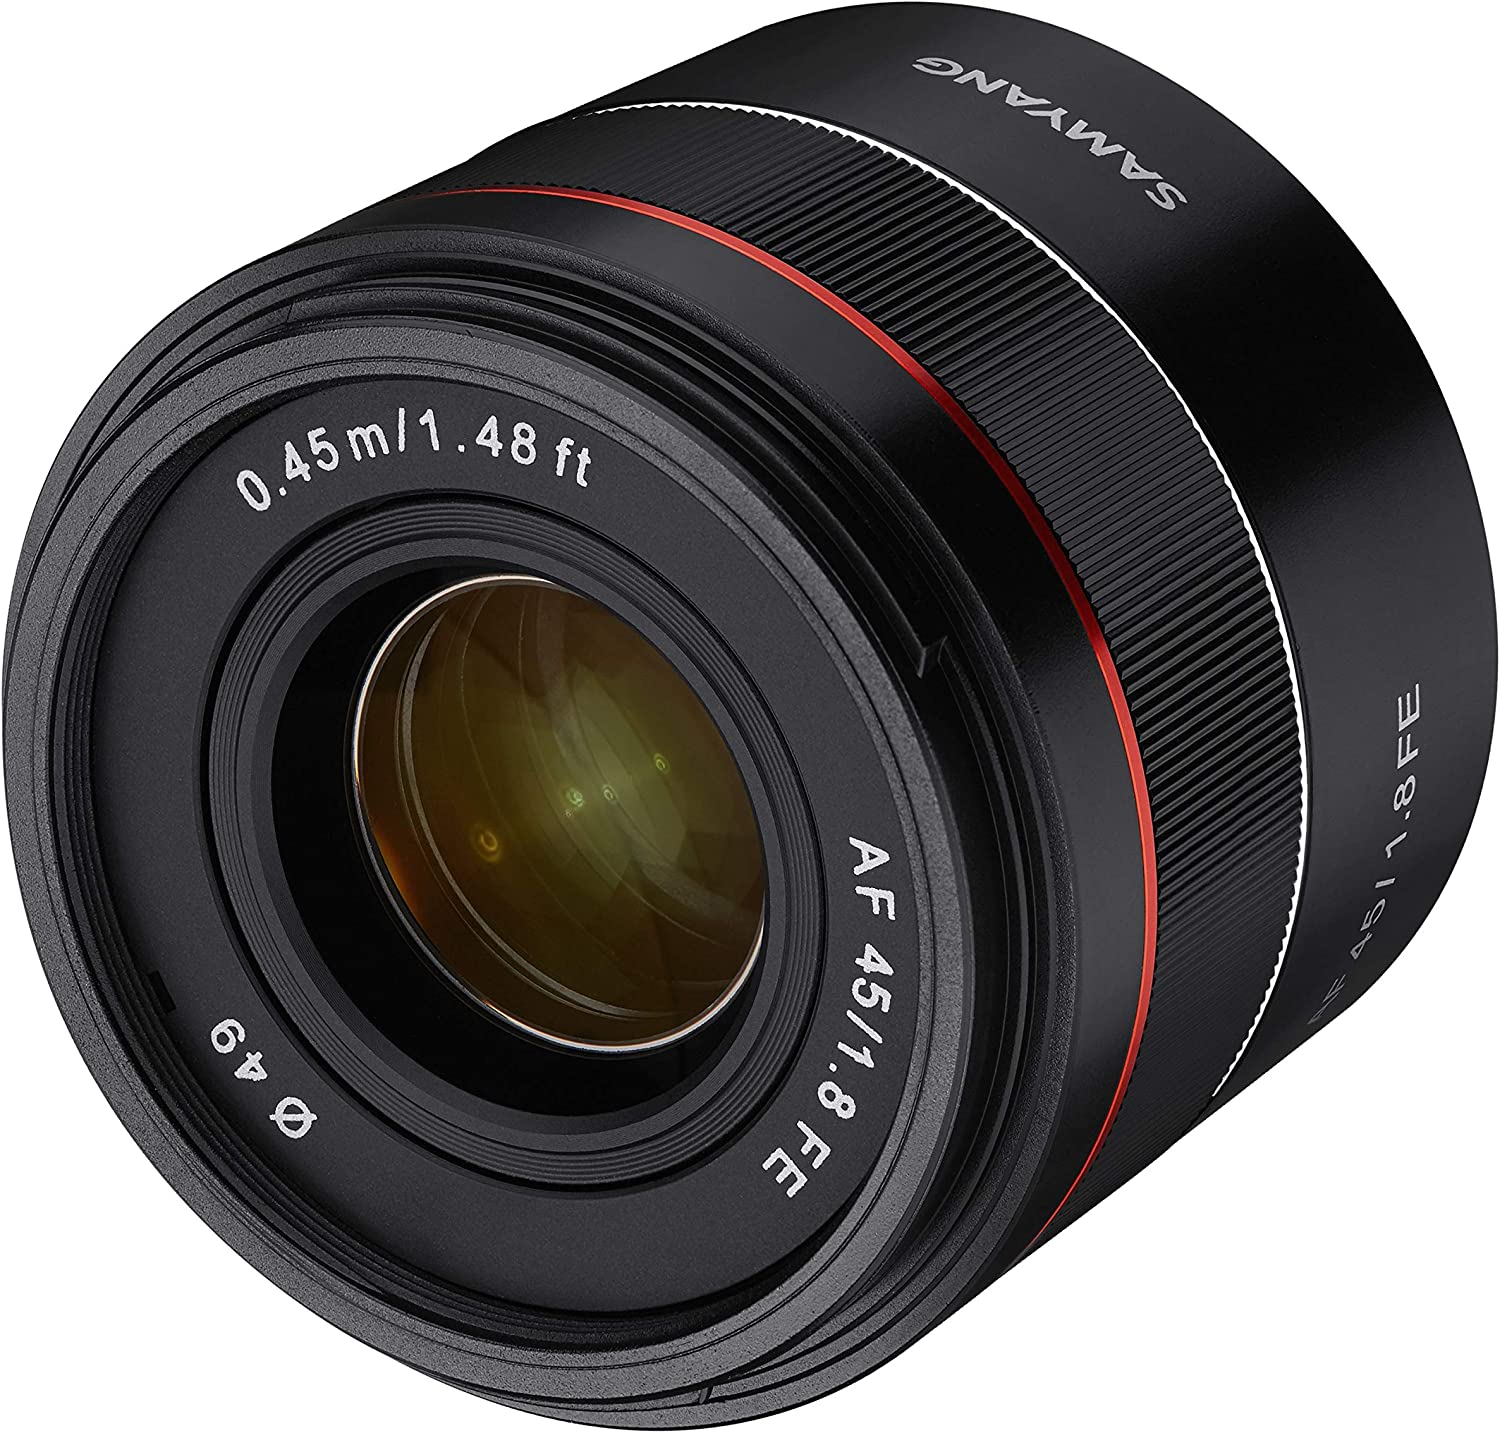 Samyang AF 45 mm F1.8 Sony FE Full Format Lens for Sony FE Cameras